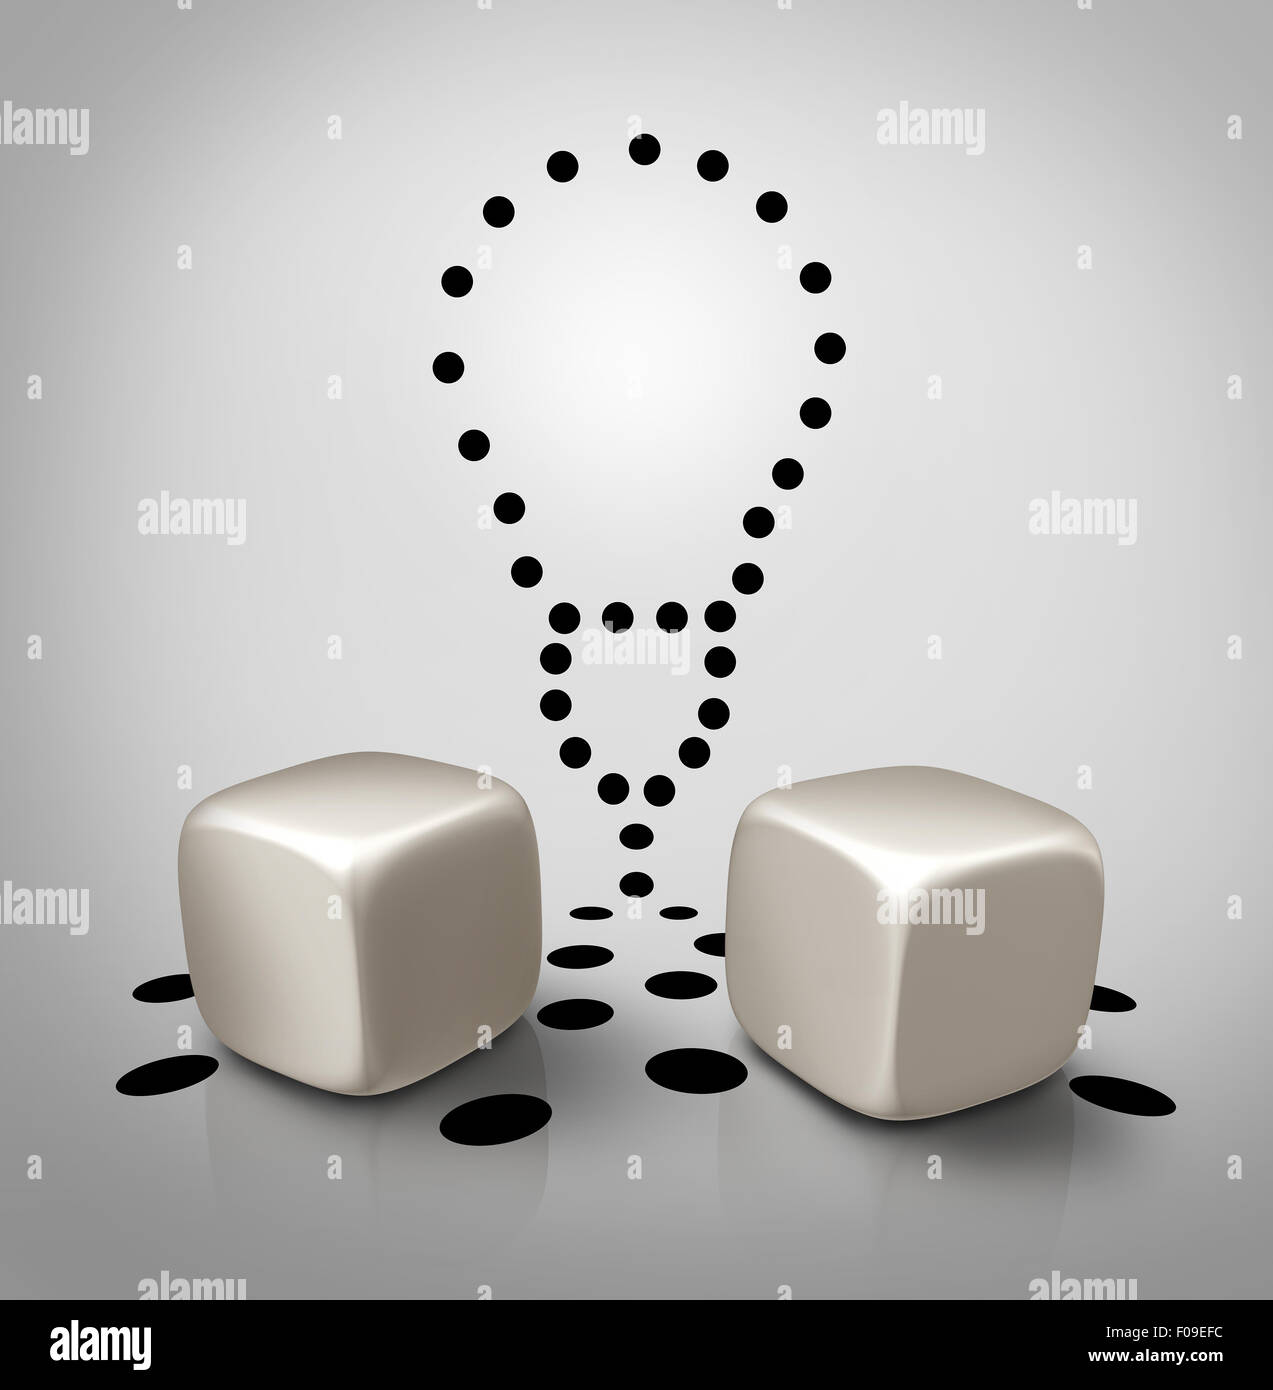 Venture idea and invention icon dice concept with spots in a light bulb shape as a creative business symbol for - Stock Image